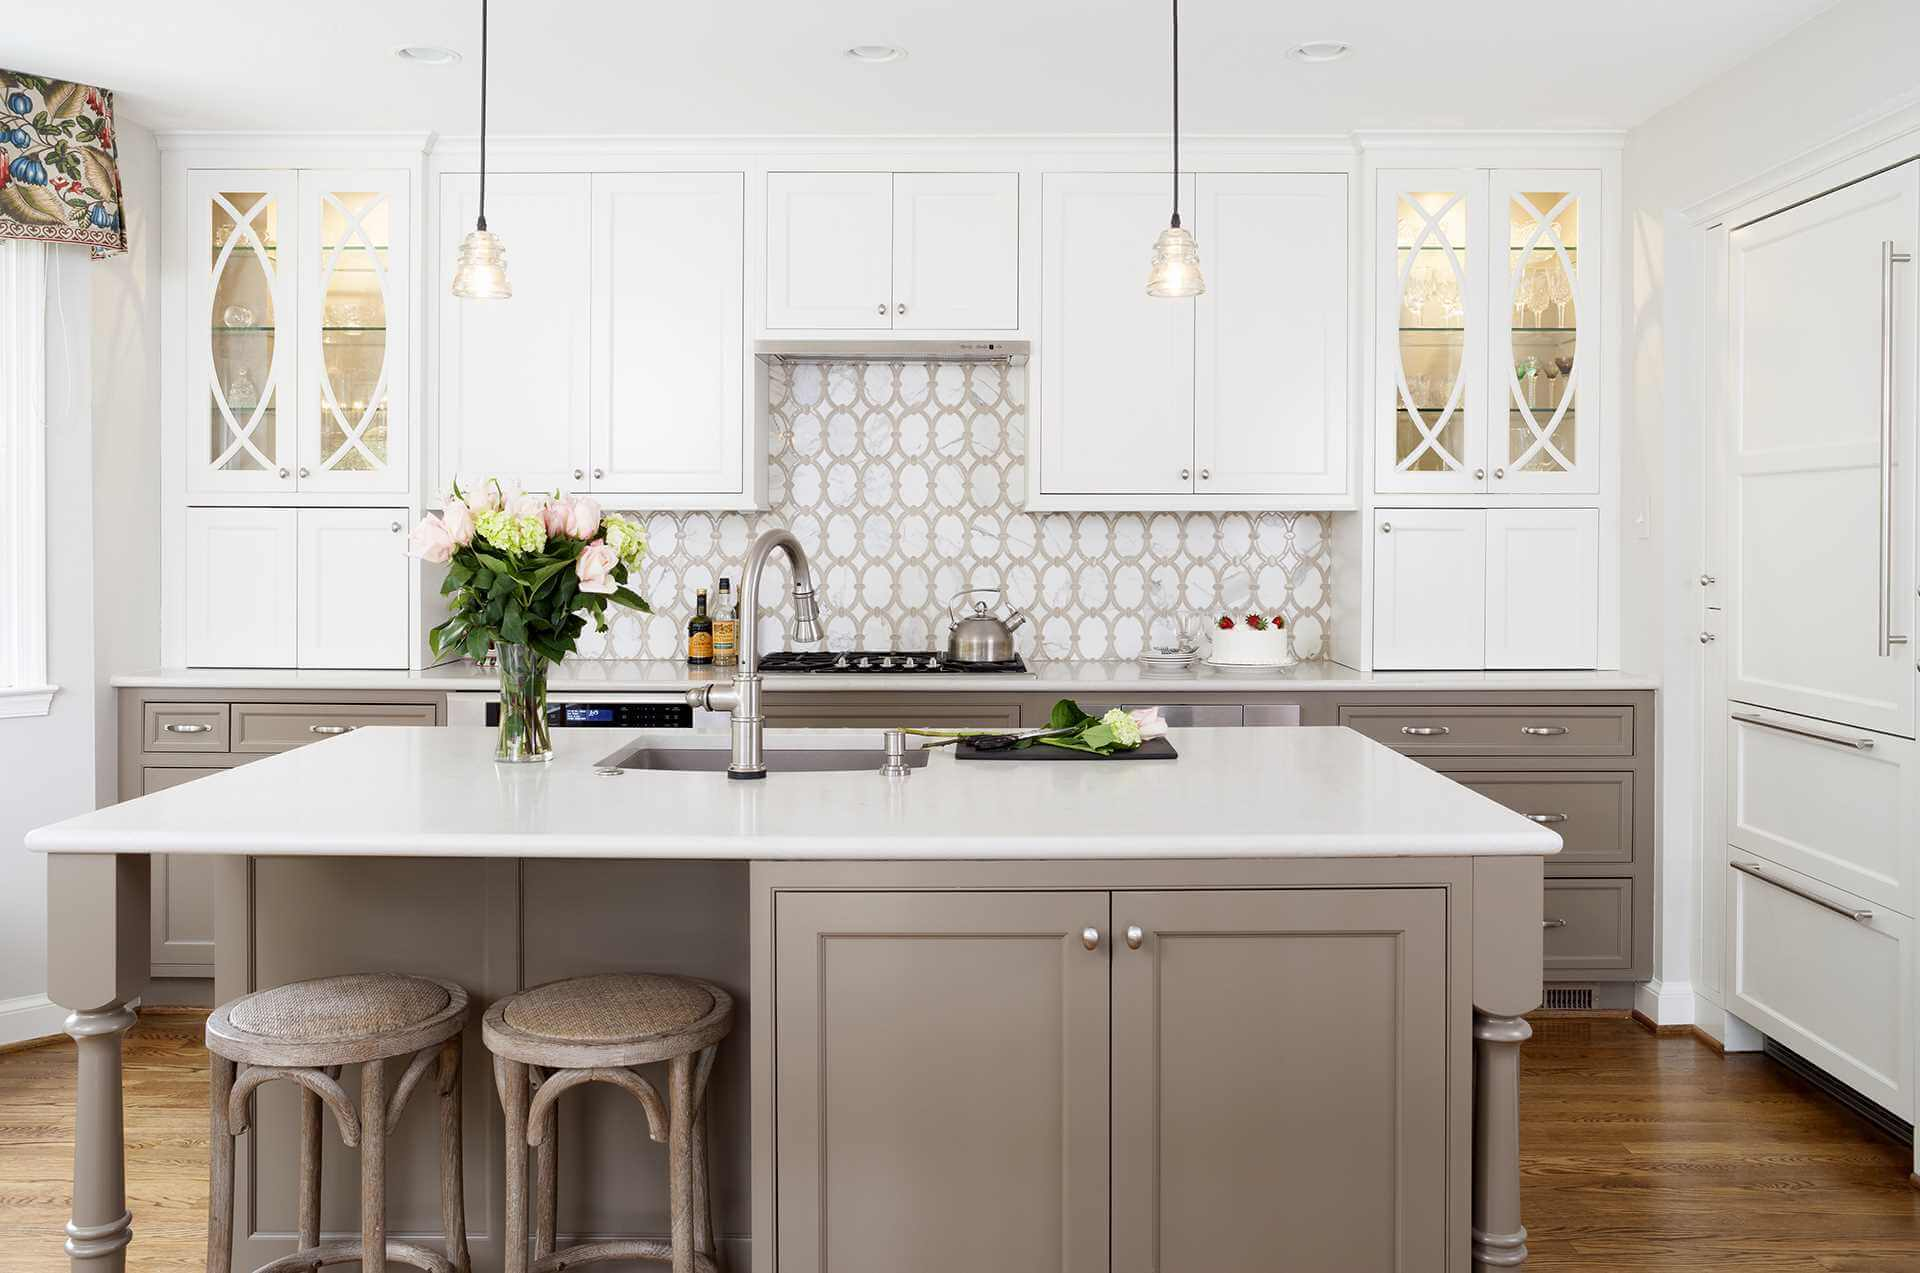 Top 10 Small Kitchen Design Tips – Kitchen Square Footage